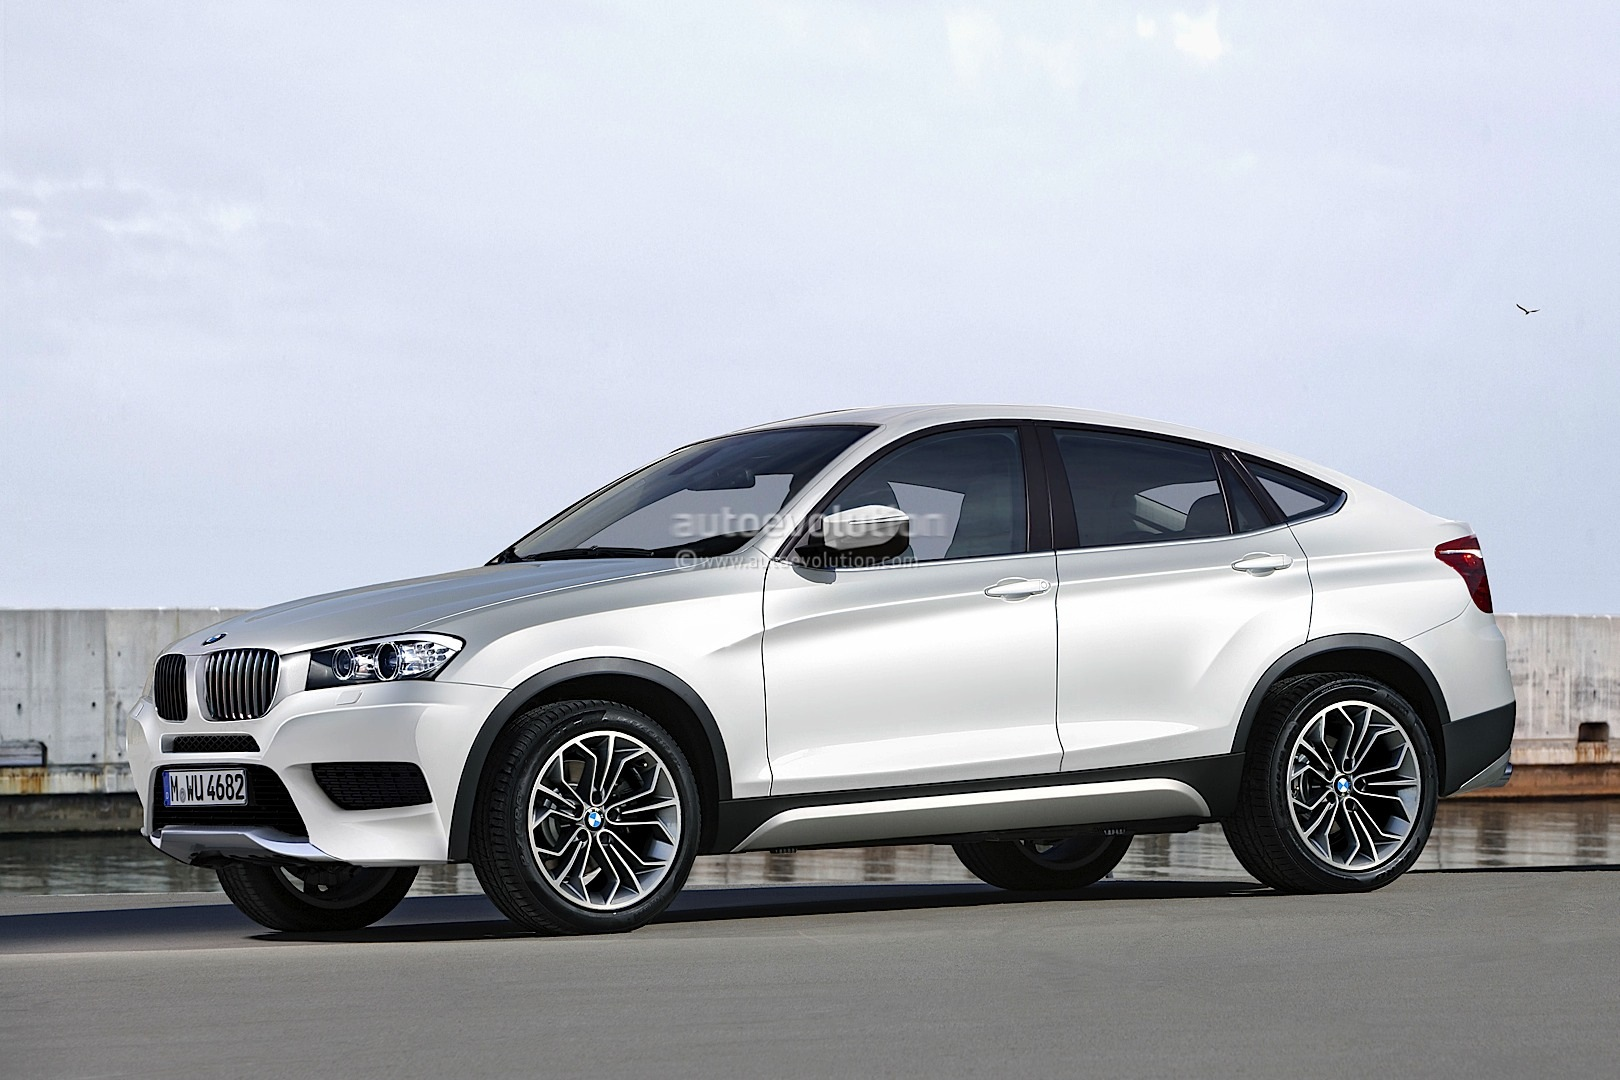 BMW X4 2014 Wallpapers HD  Free Picture Download Image Of Wallpaper